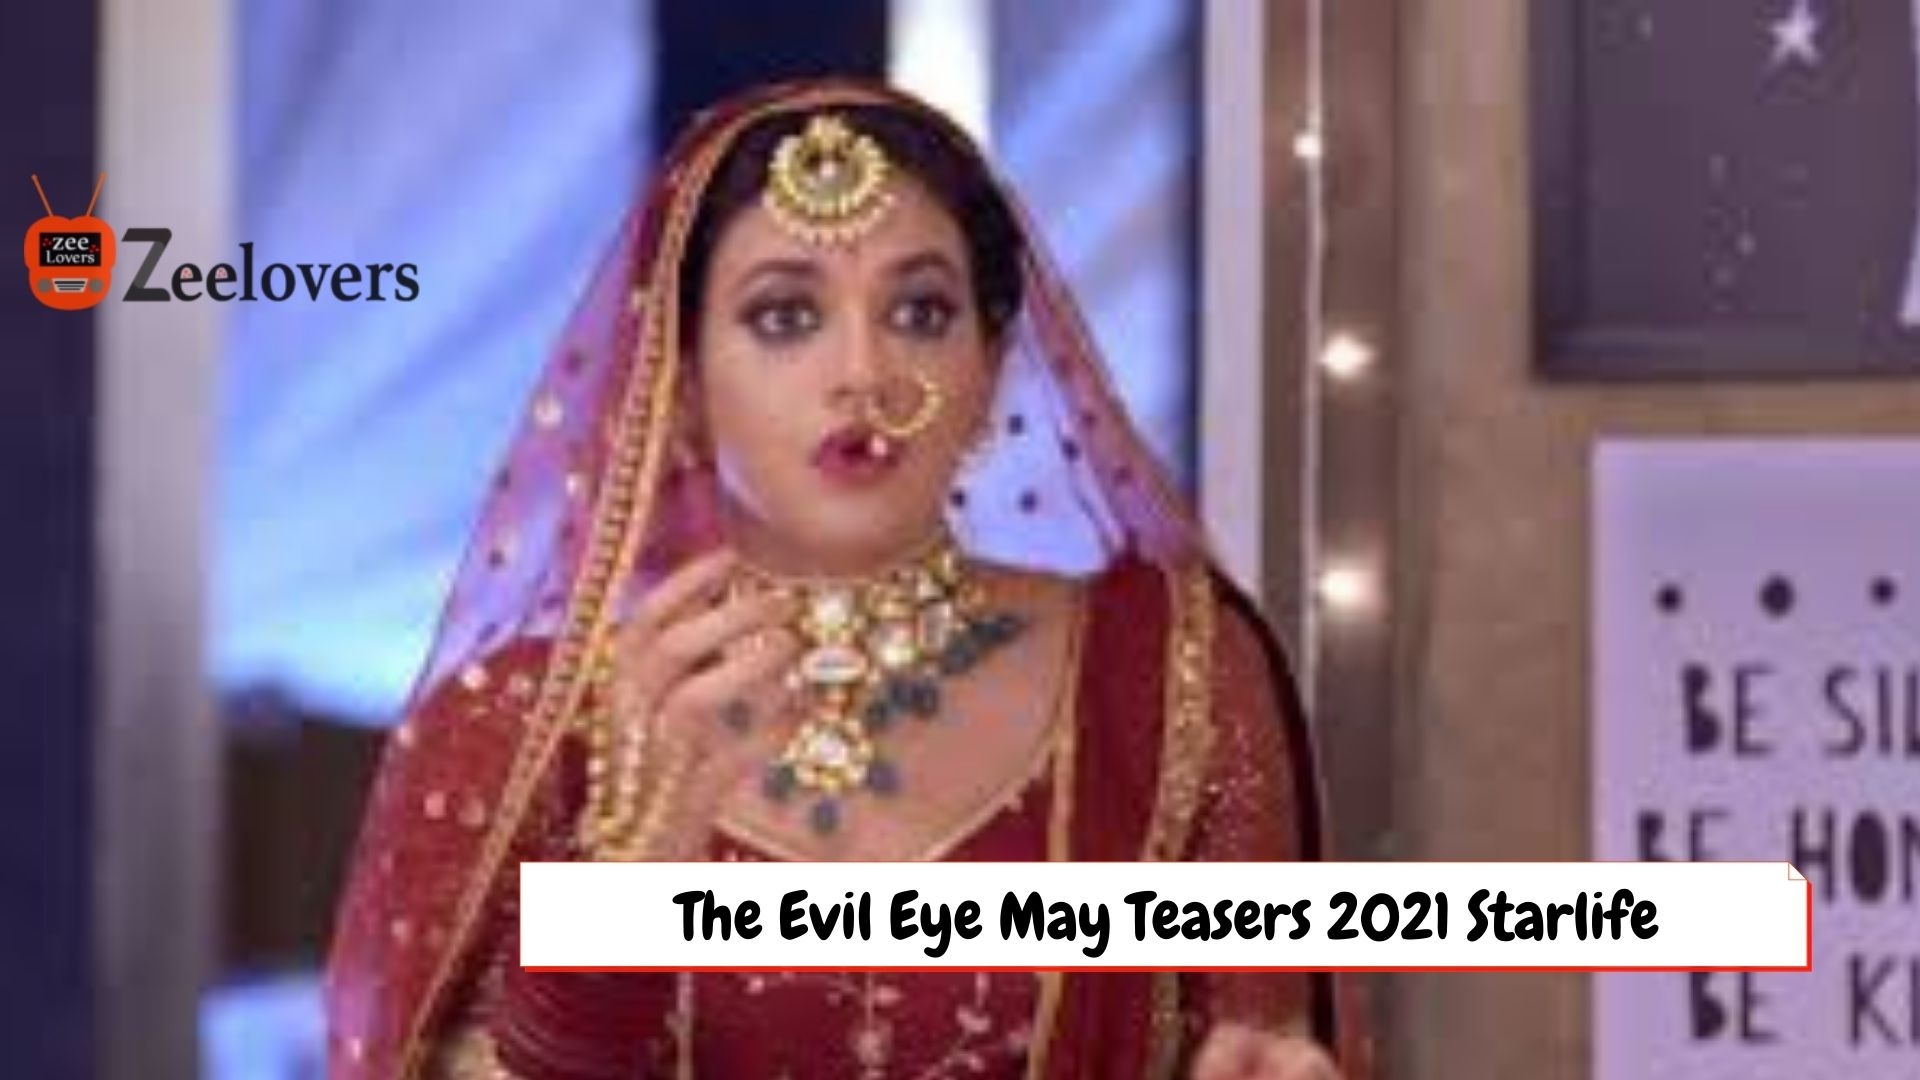 The Evil Eye May Teasers 2021 Starlife